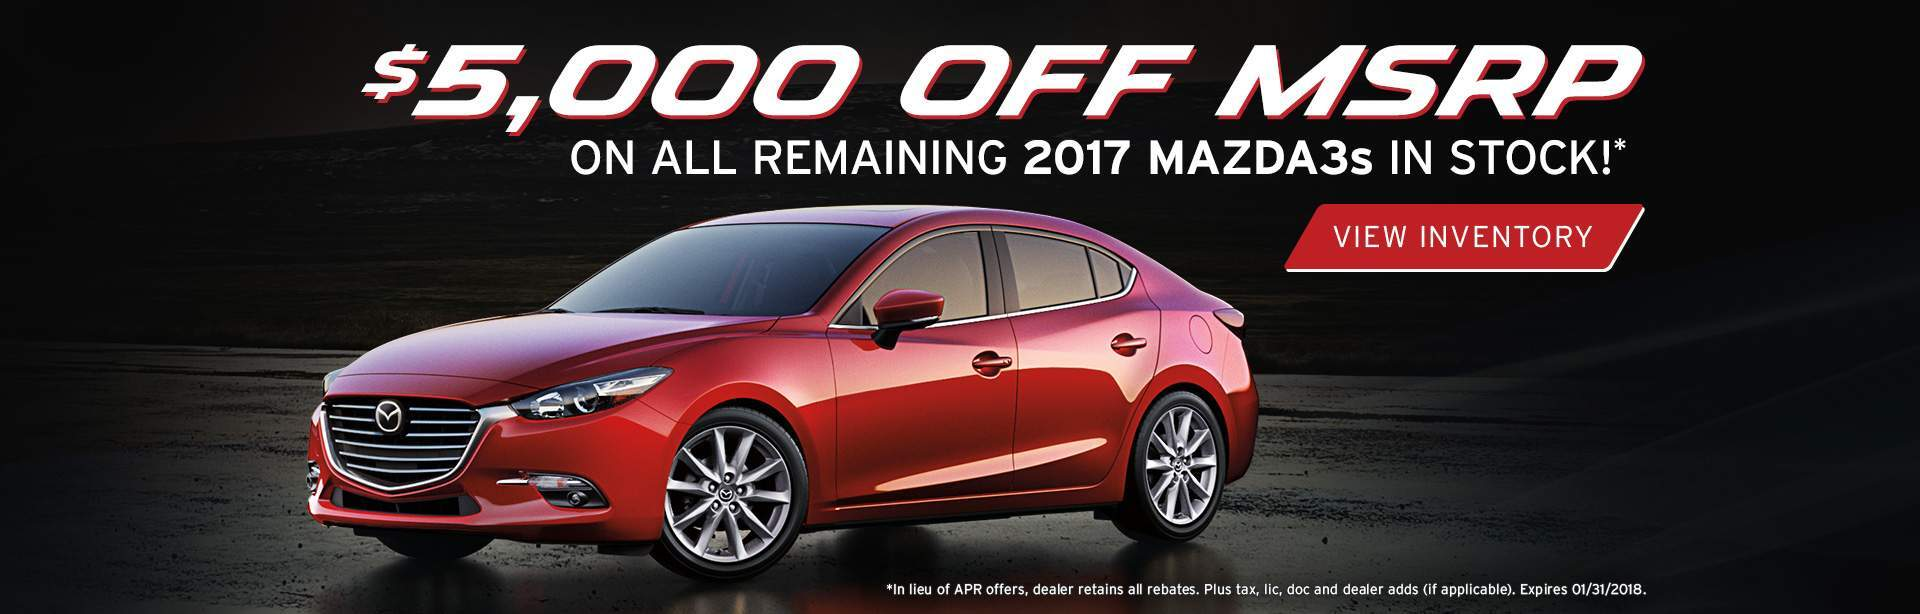 Remaining 2017 Mazda3s In Stock